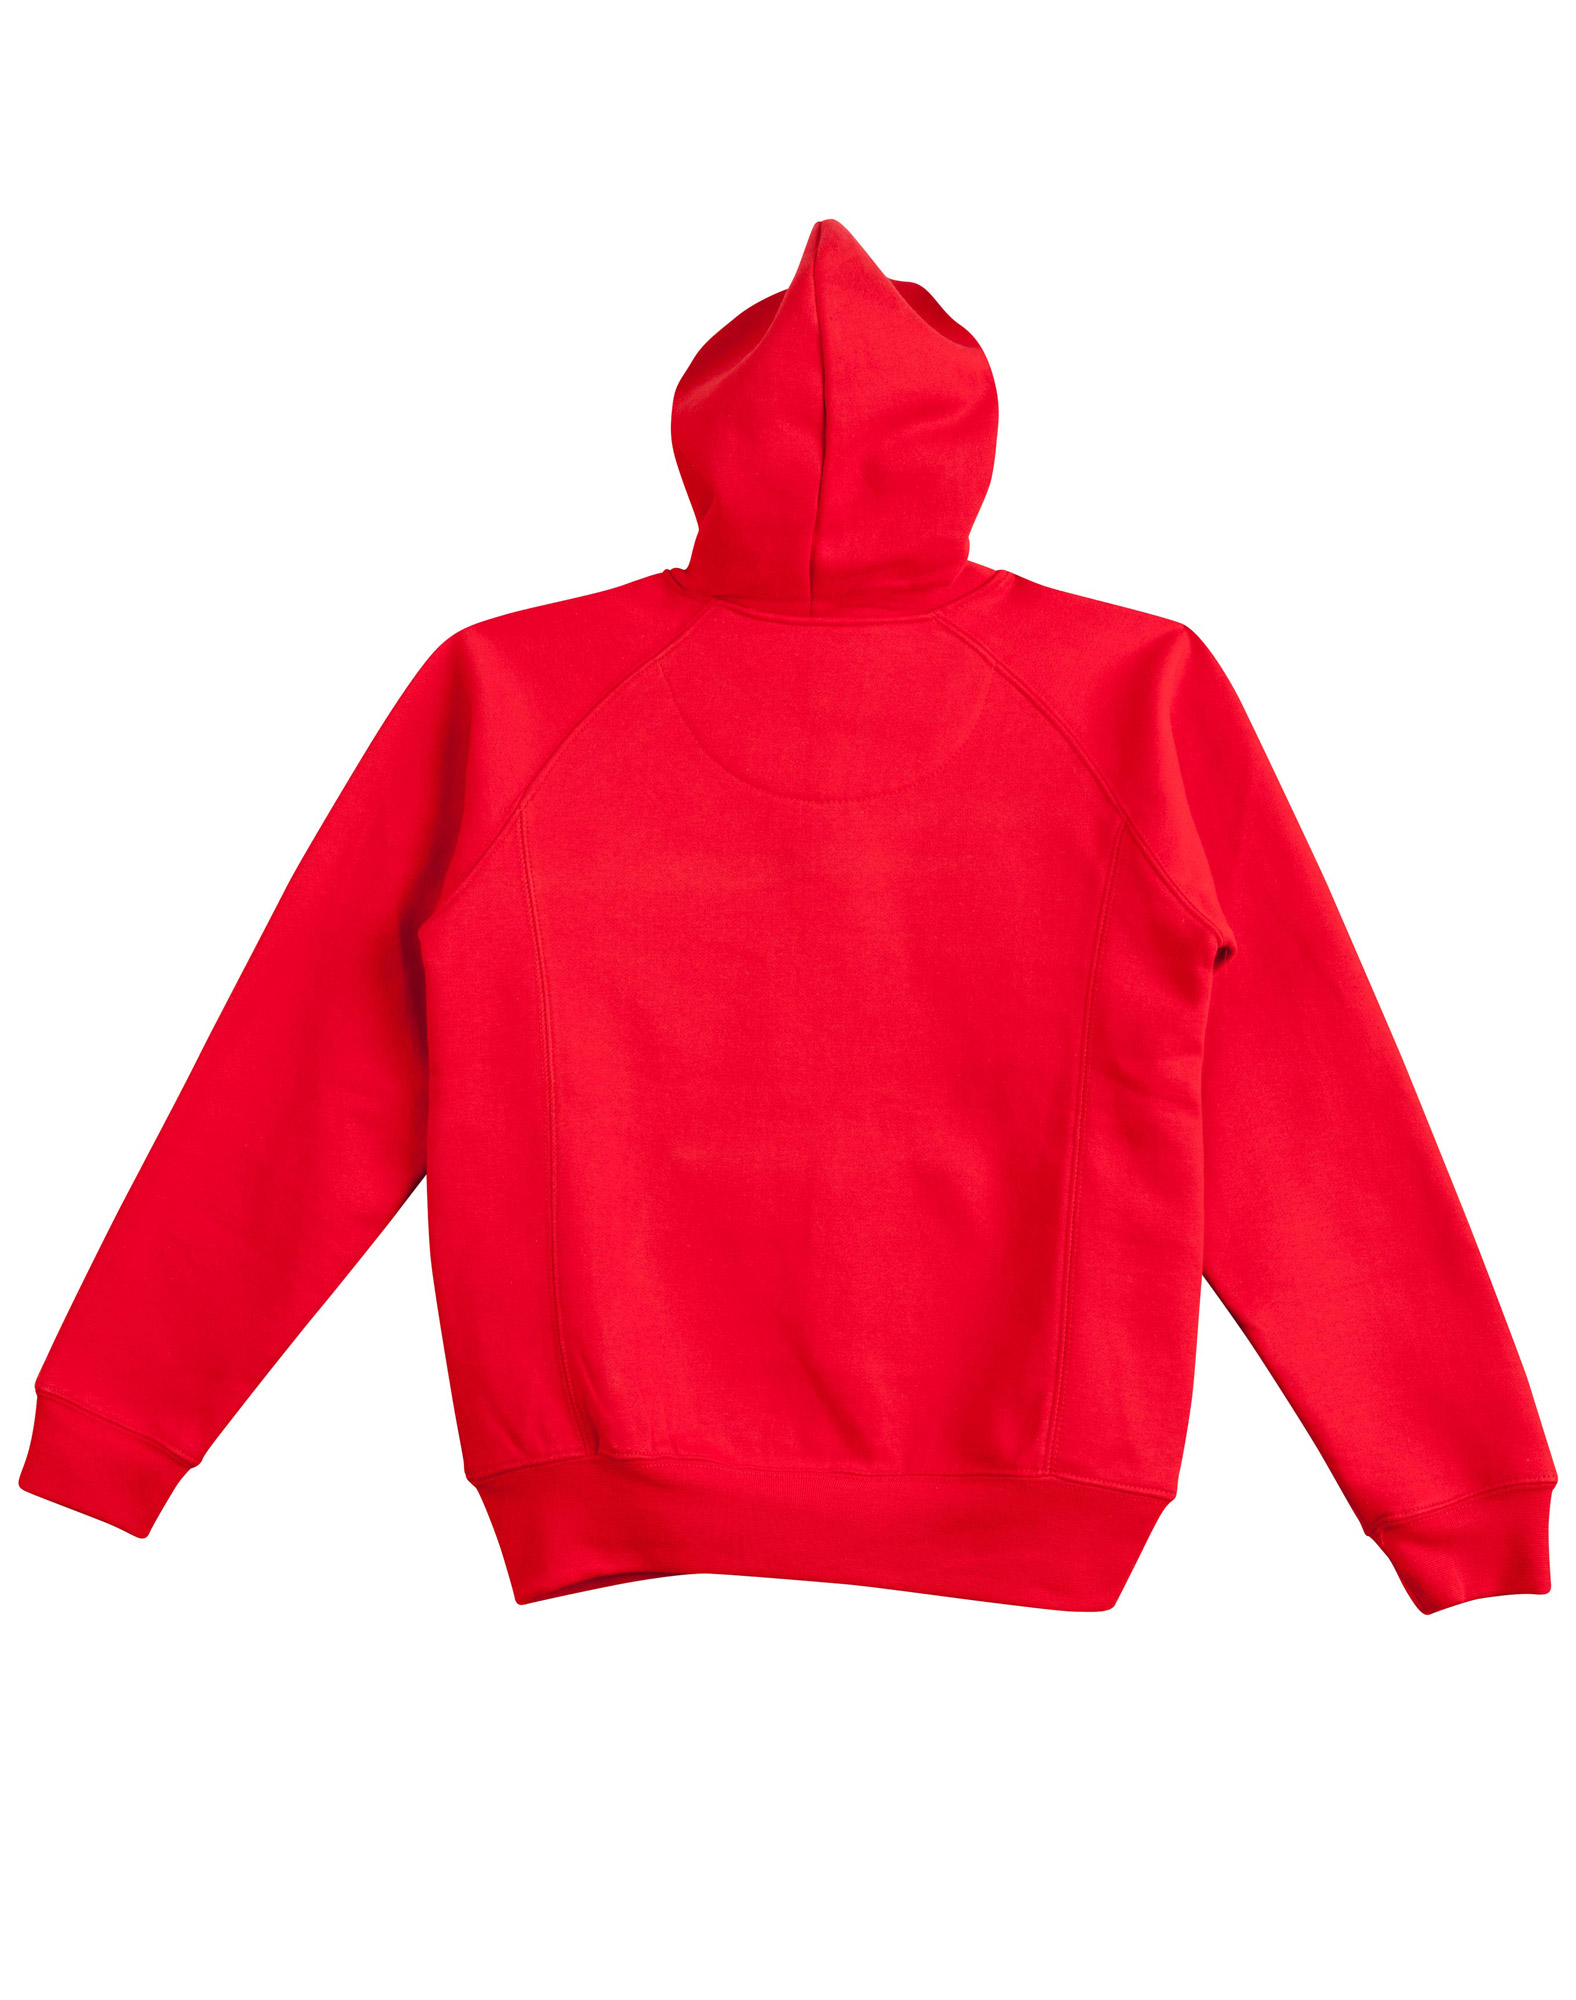 https://s3-ap-southeast-1.amazonaws.com/ws-imgs/OUTWEAR/FL08_Red_Back_l.jpg